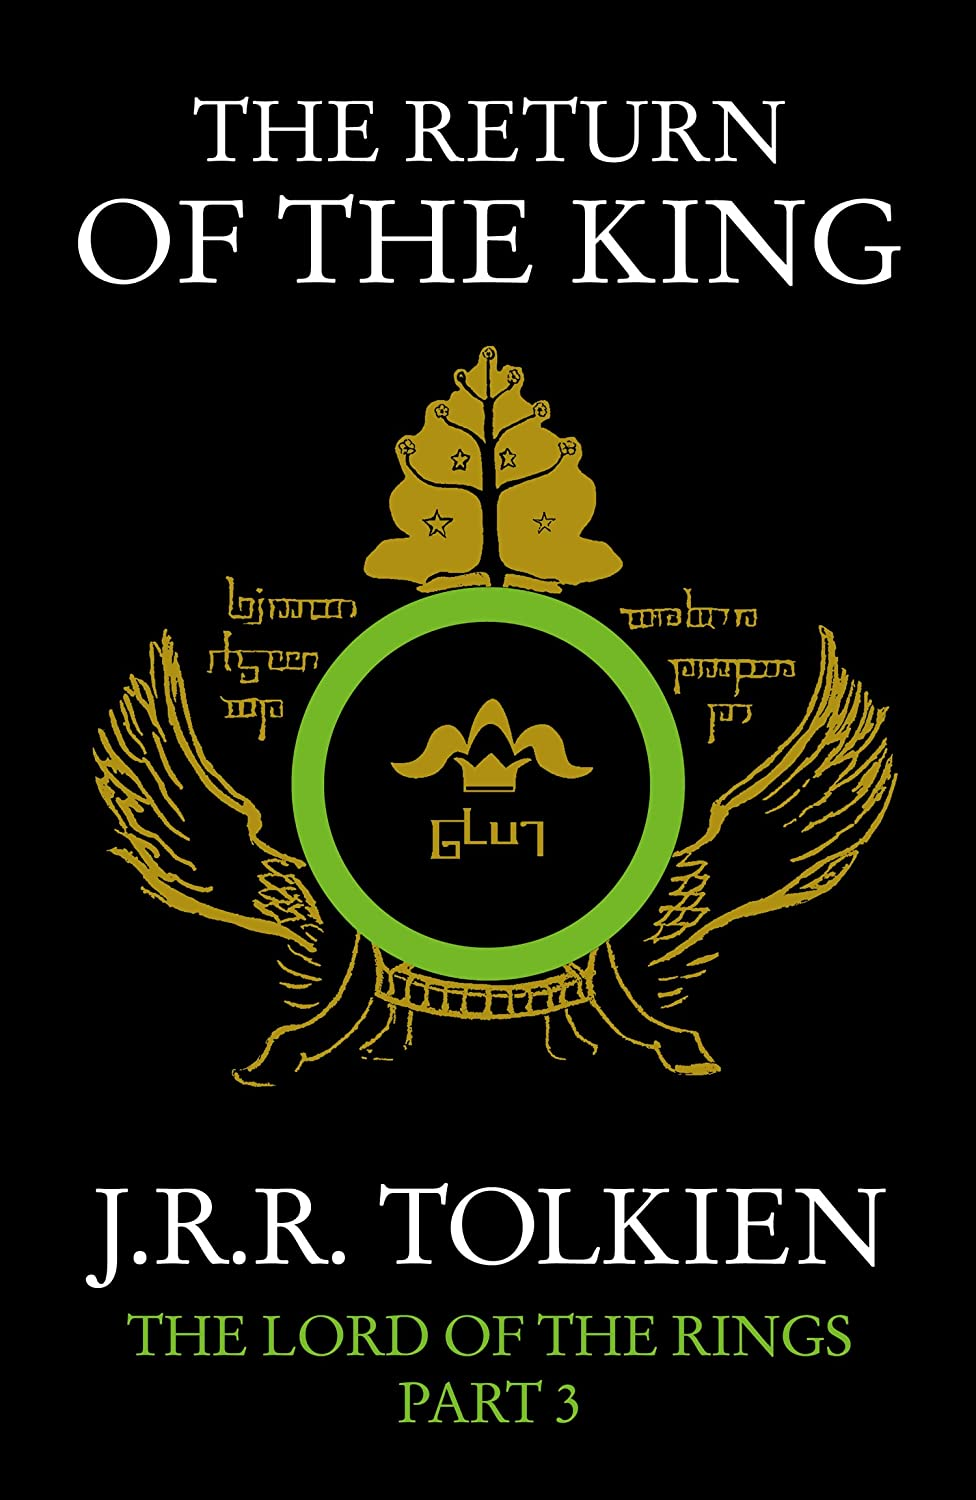 Lord of the rings book report